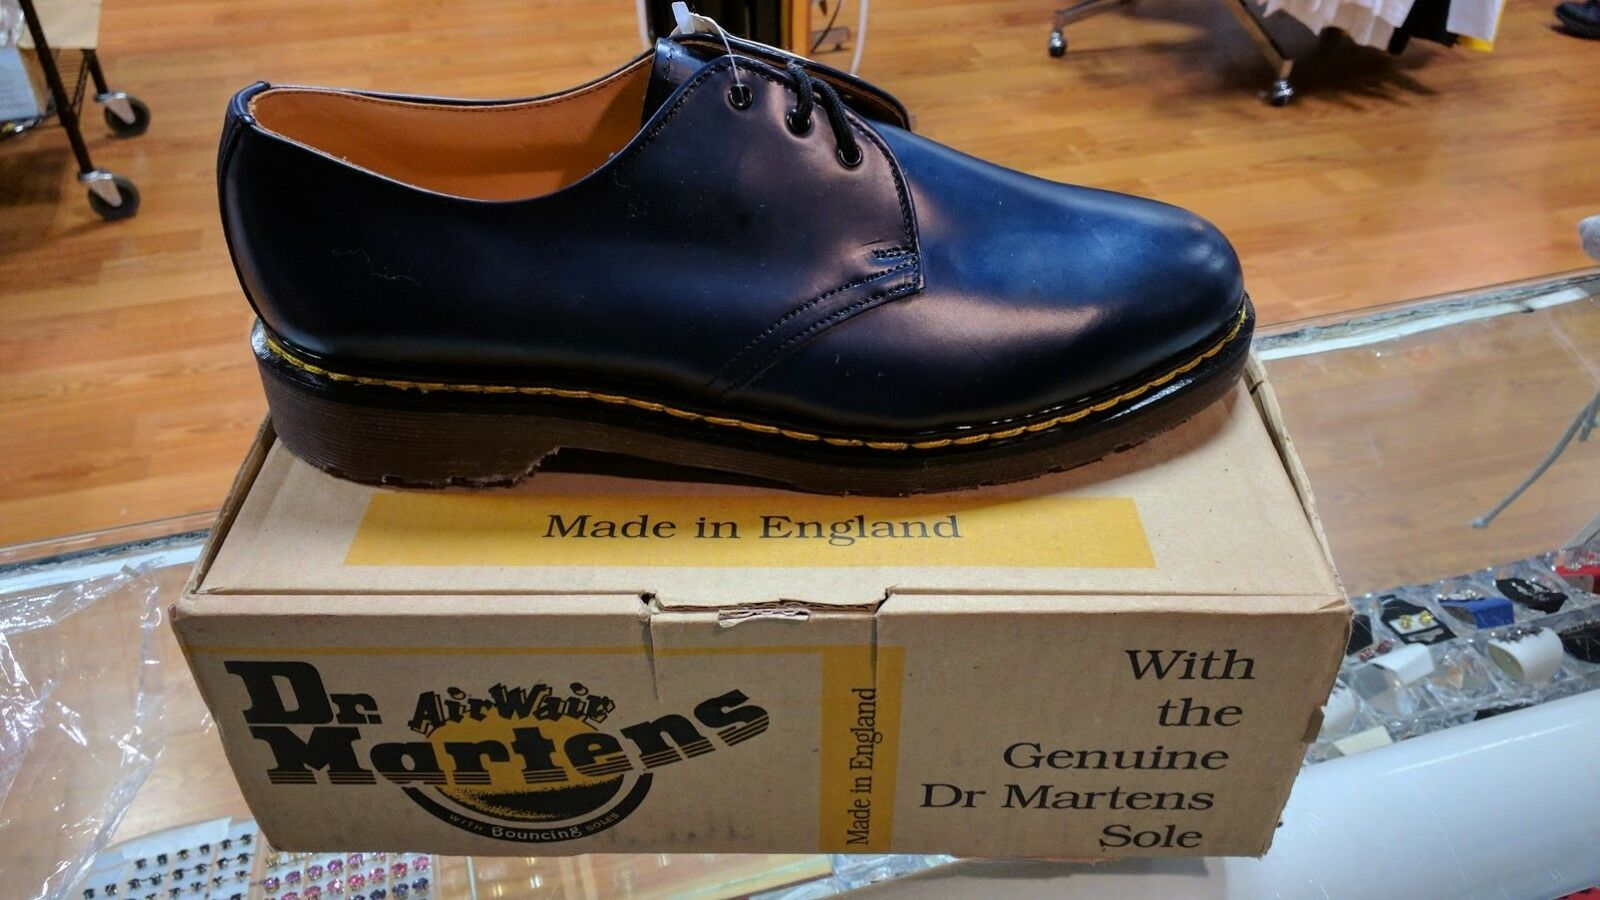 Vintage 1461 Dr Martens Airwair Shoes Navy Blue - BRAND NEW